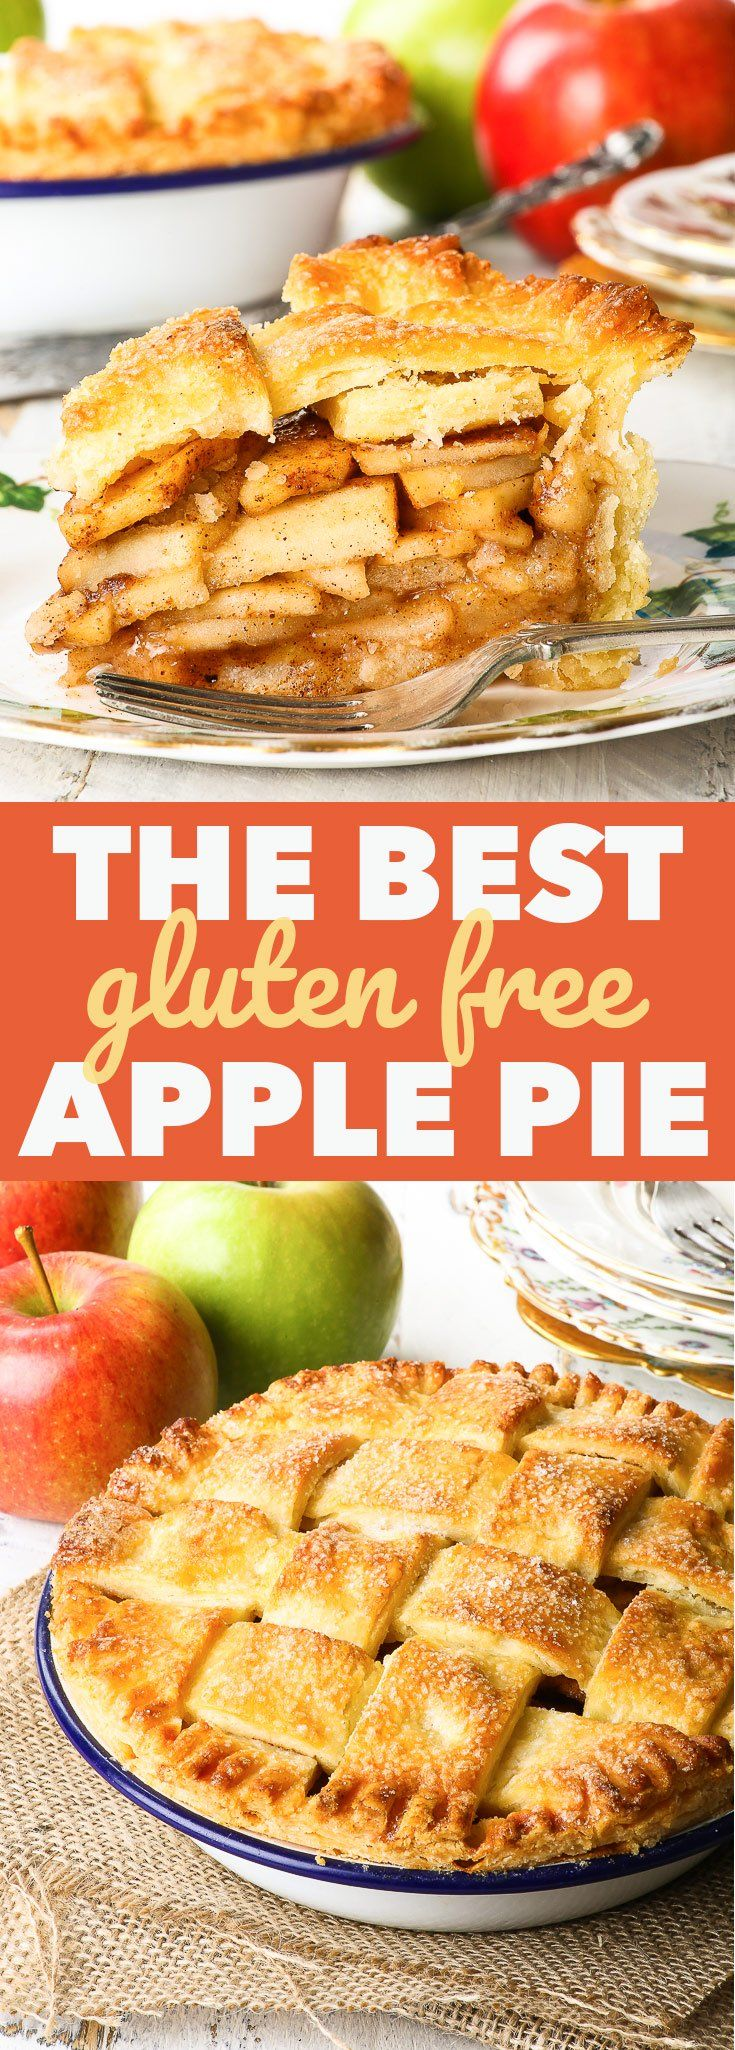 Gluten Free Apple Pie - The Loopy Whisk